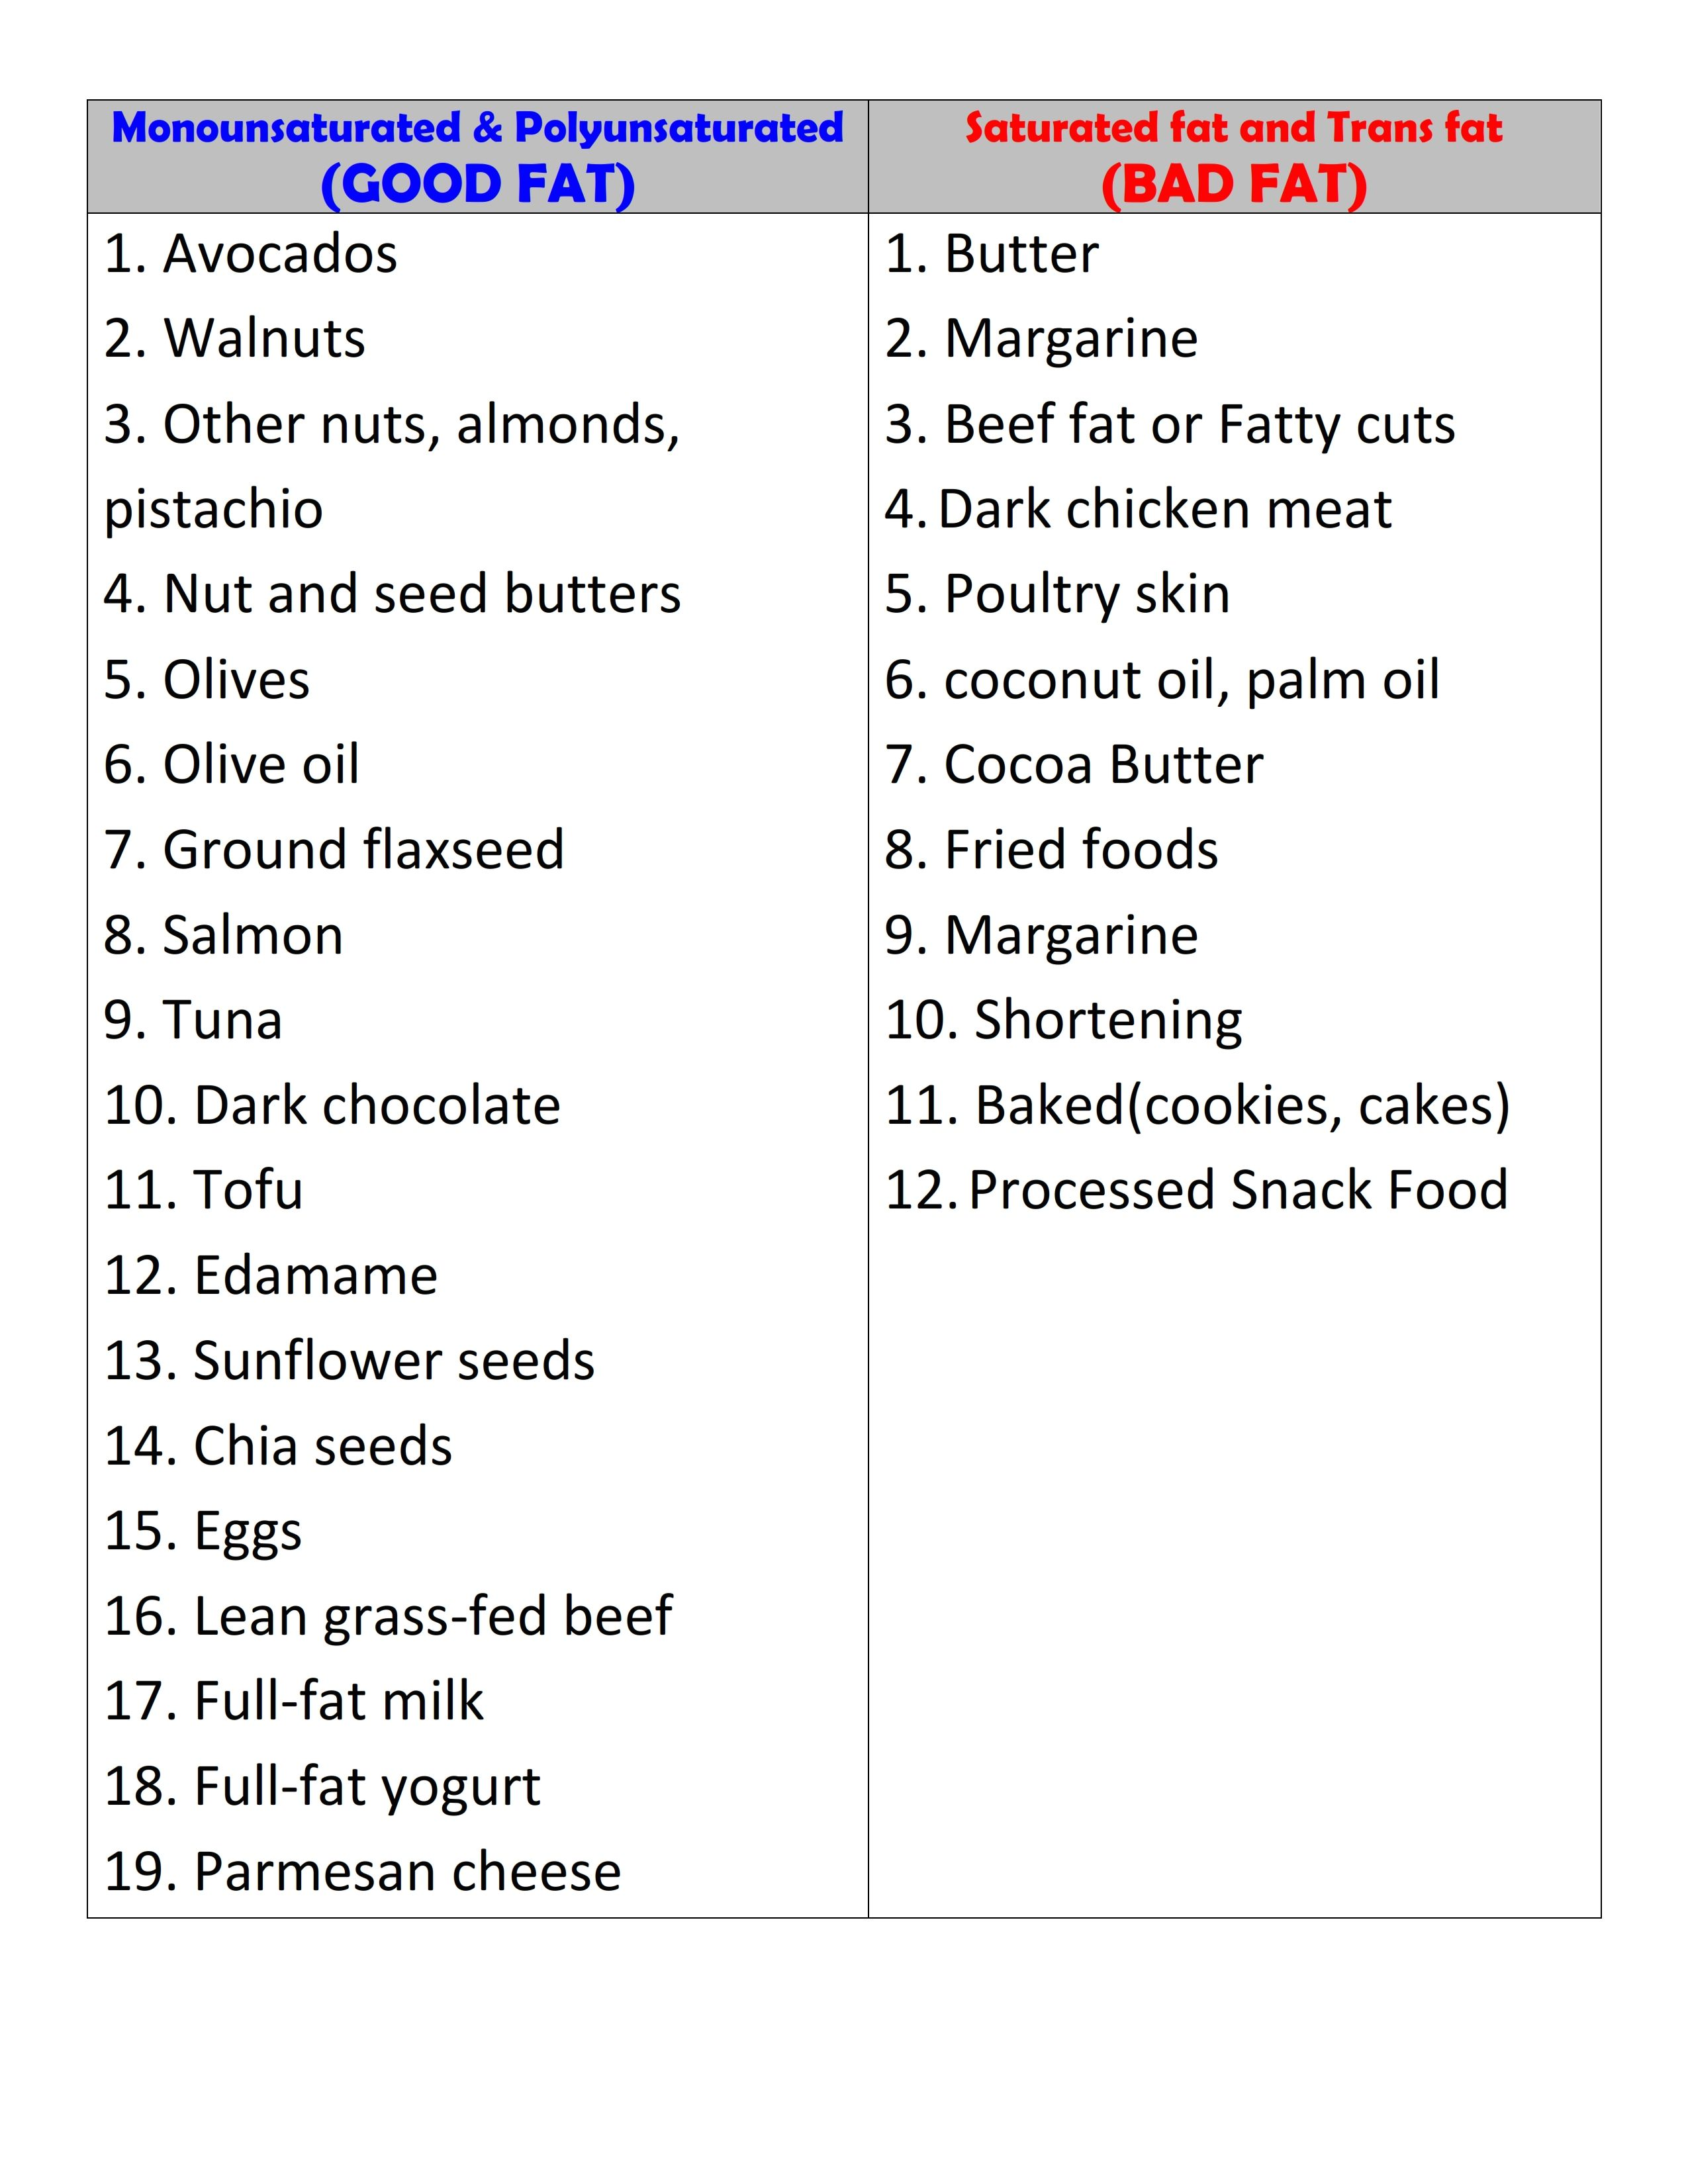 Saturated Fat List Pics